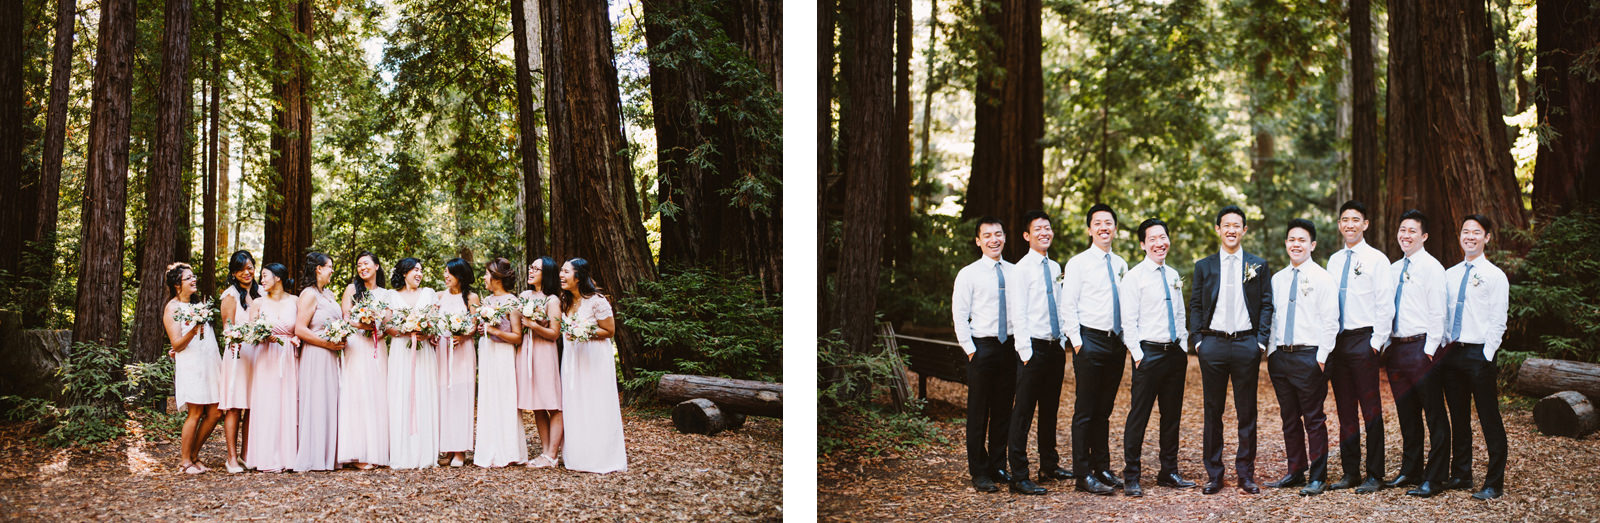 kimclay-blog-010 REDWOOD FOREST WEDDING